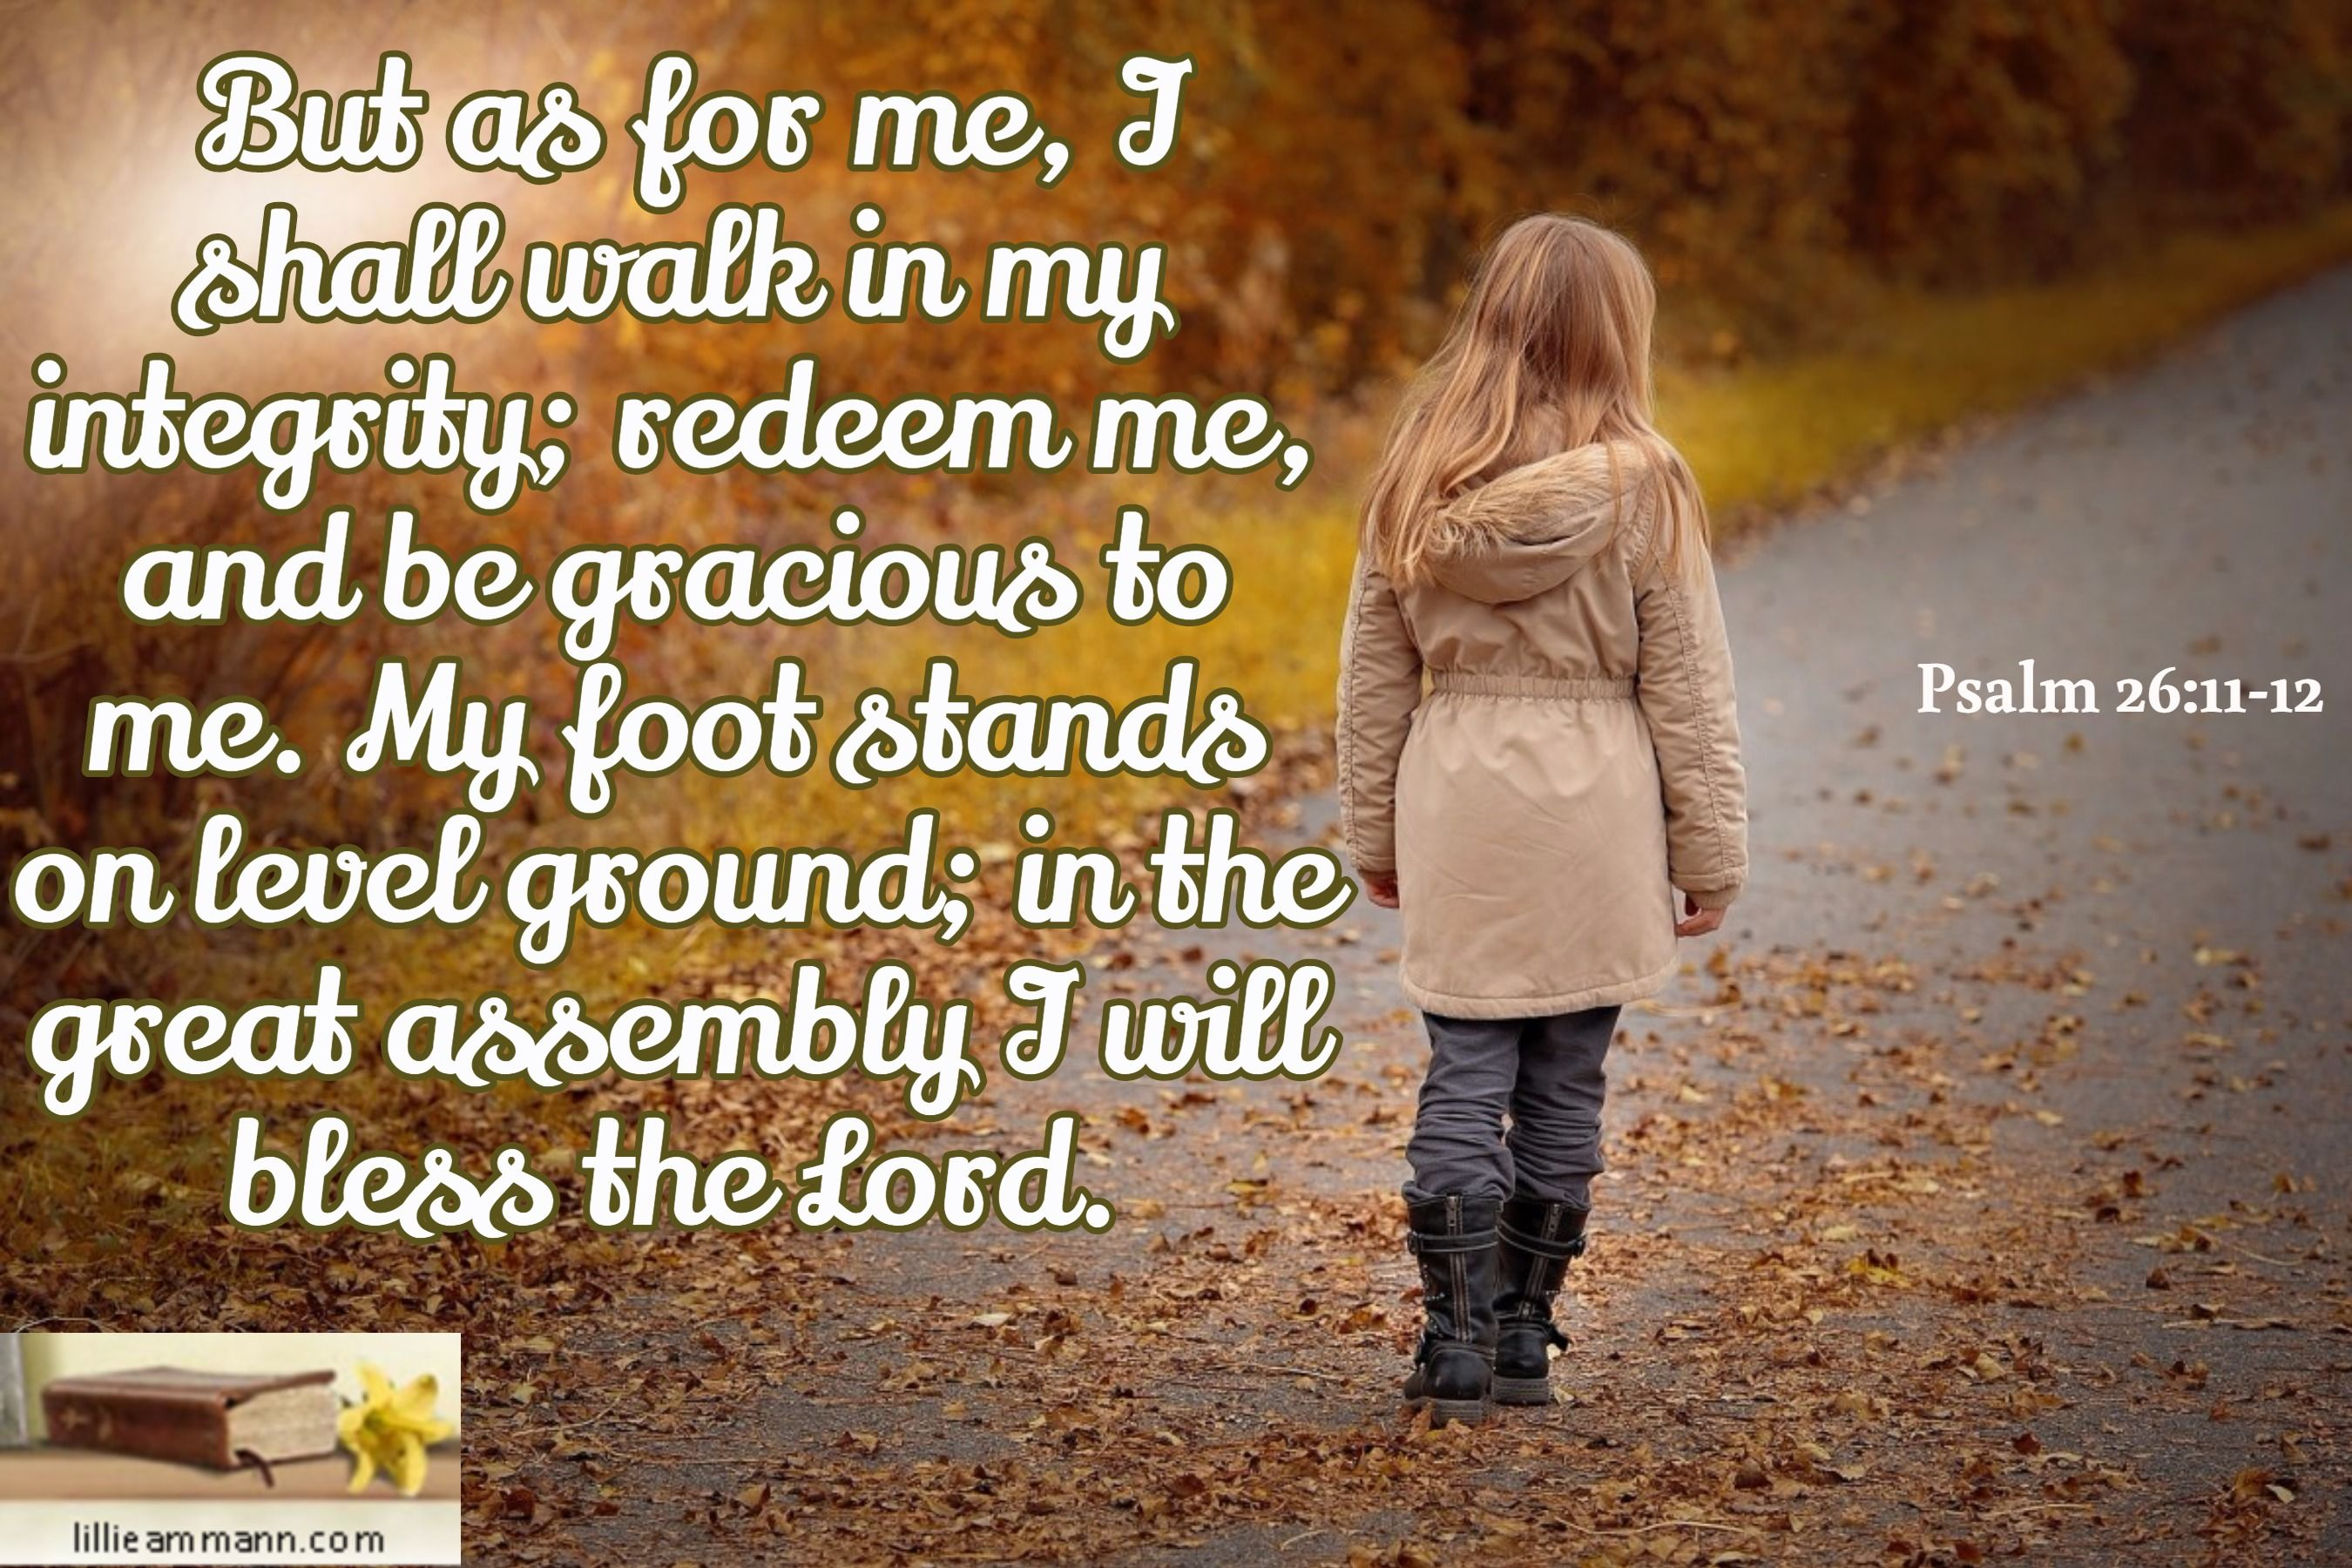 But as for me, I shall walk in my integrity; redeem me, and be gracious to me. My foot stands on lev...